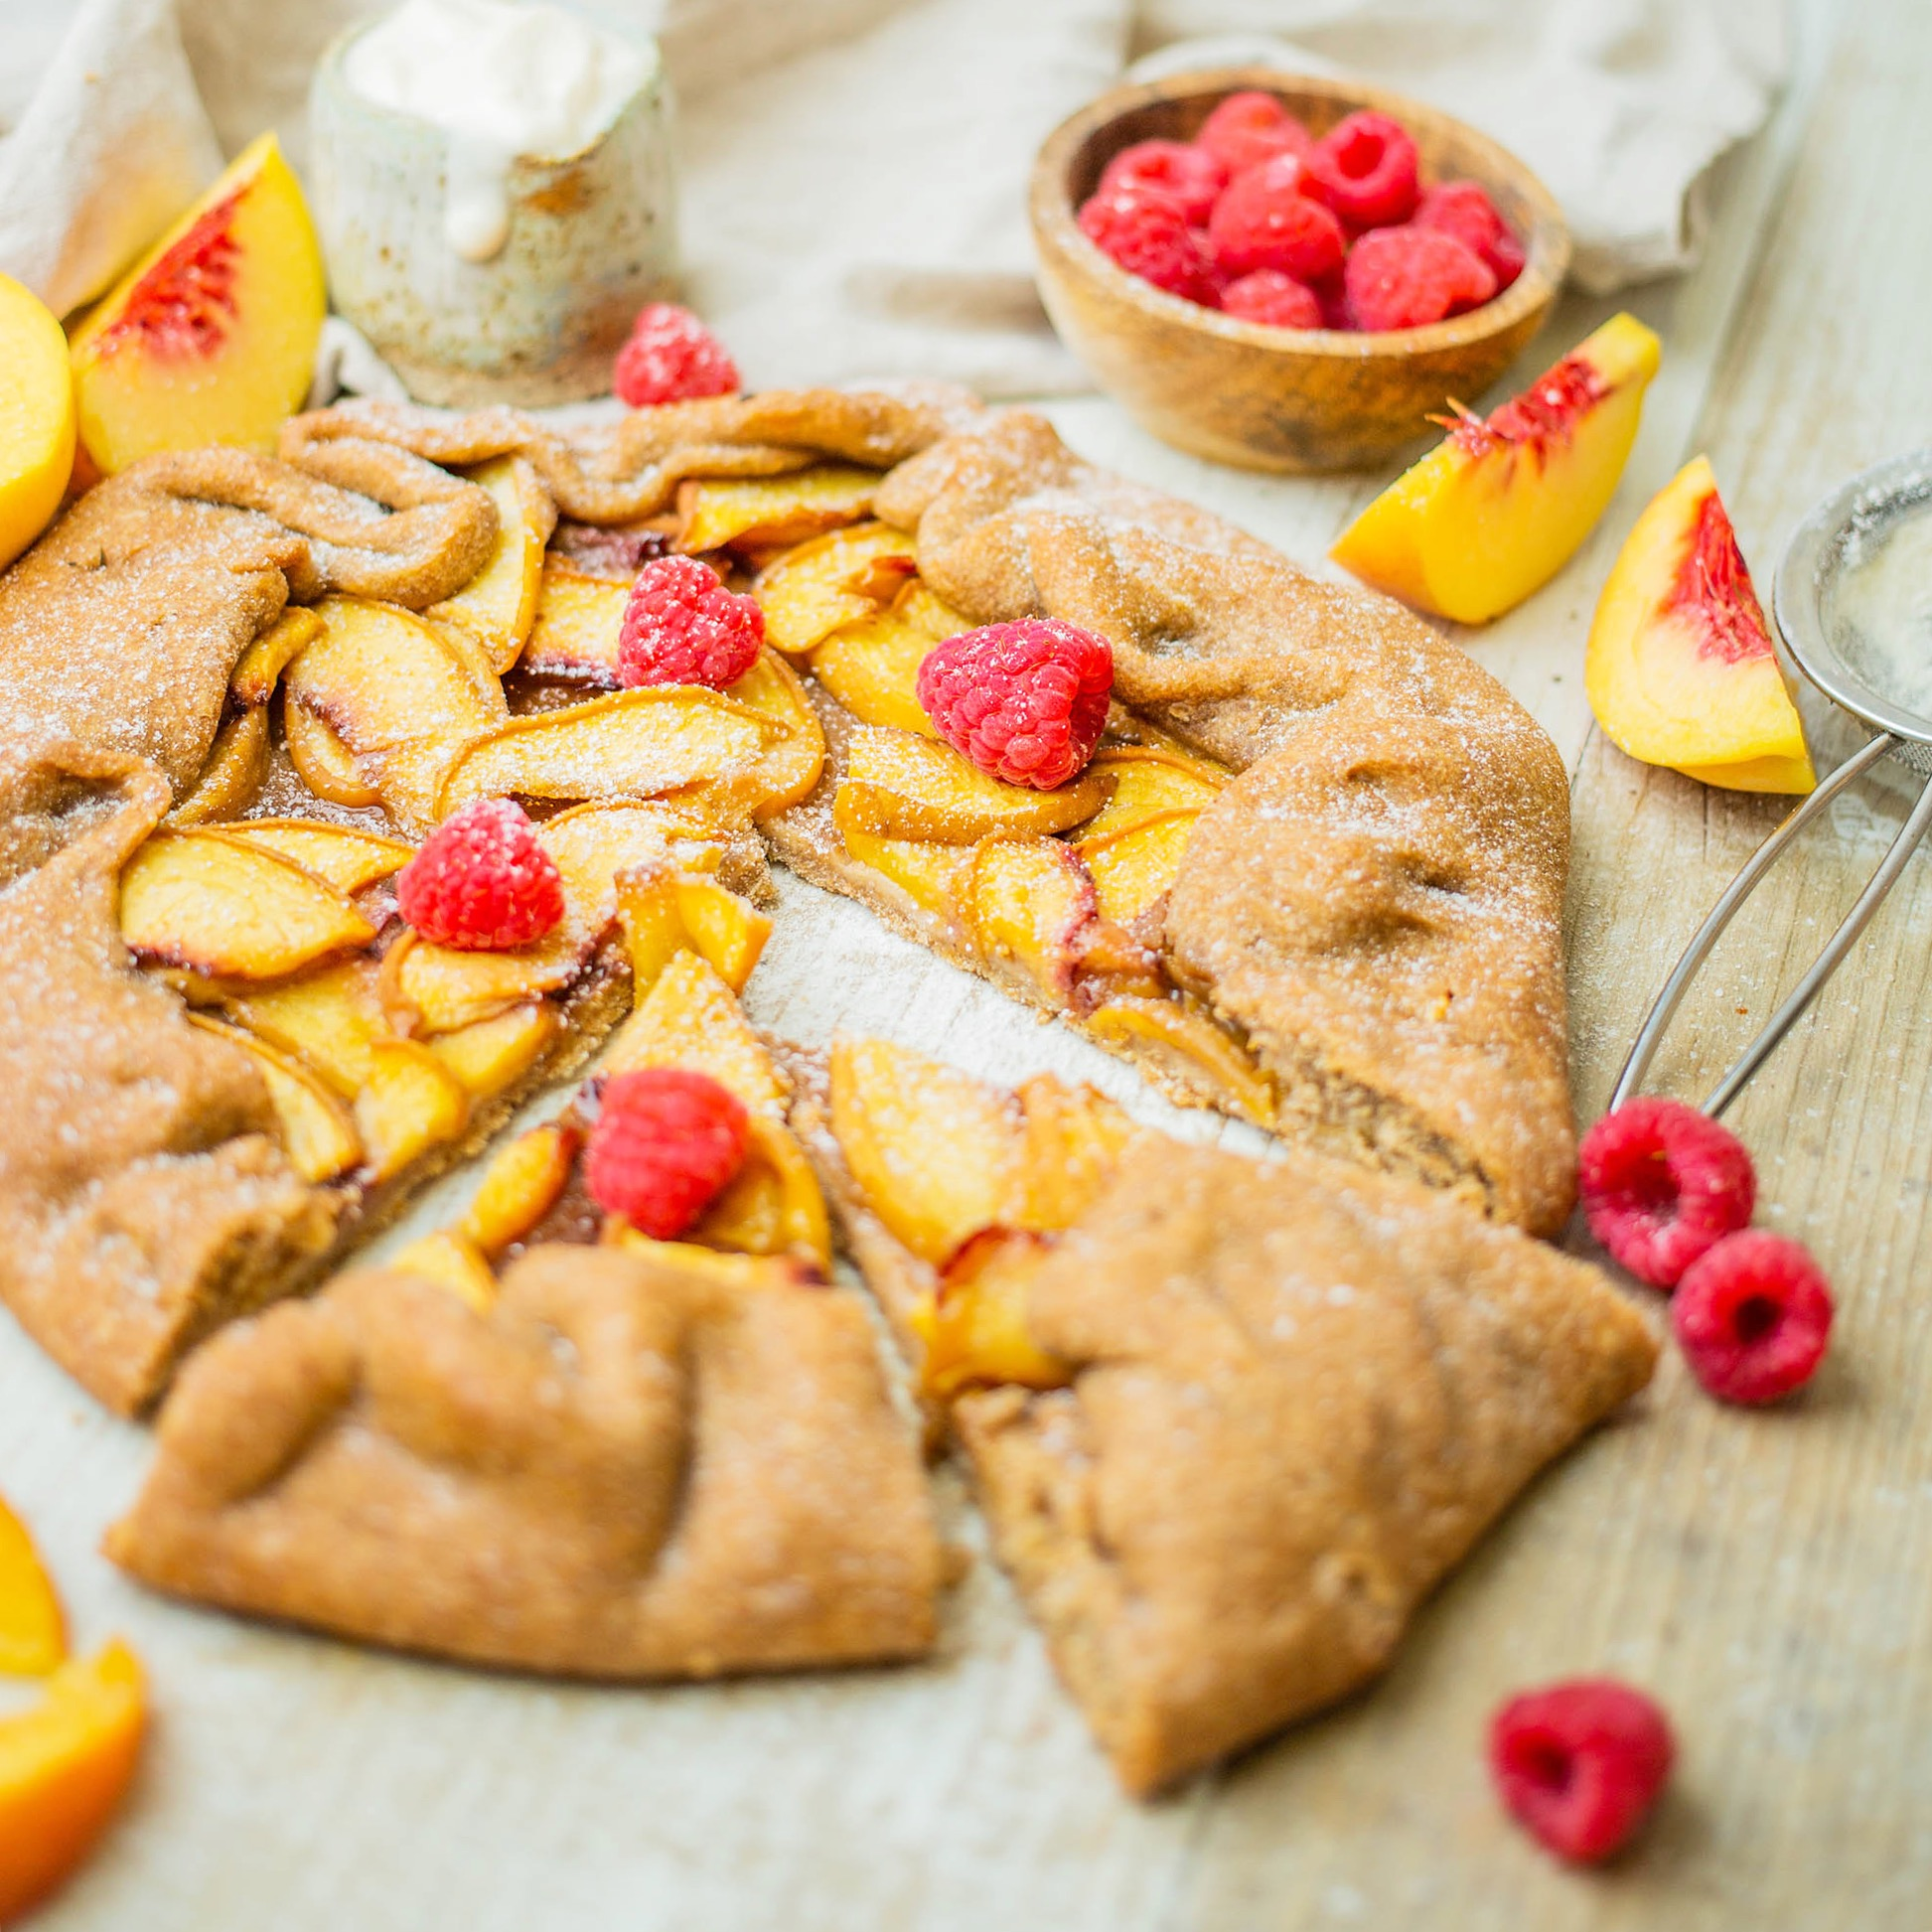 Vegan Peach Gallette with homemade spelt and buckwheat pastry